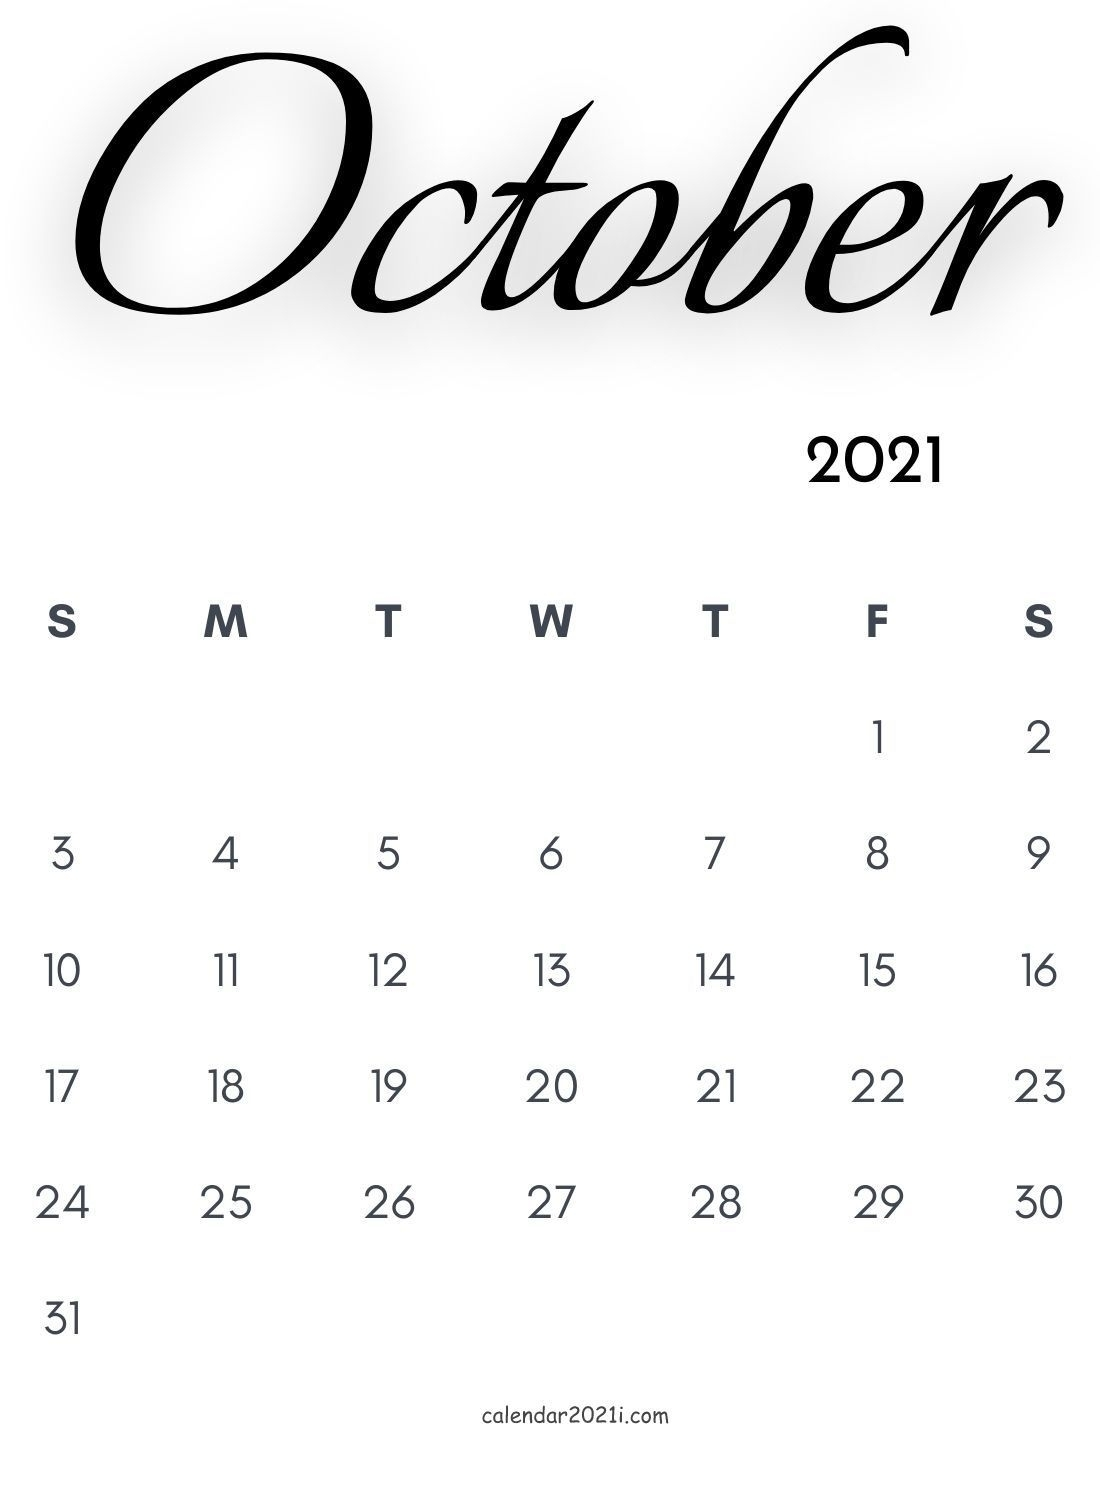 October 2021 Calligraphy Calendar In 2020 | Monthly Calendar